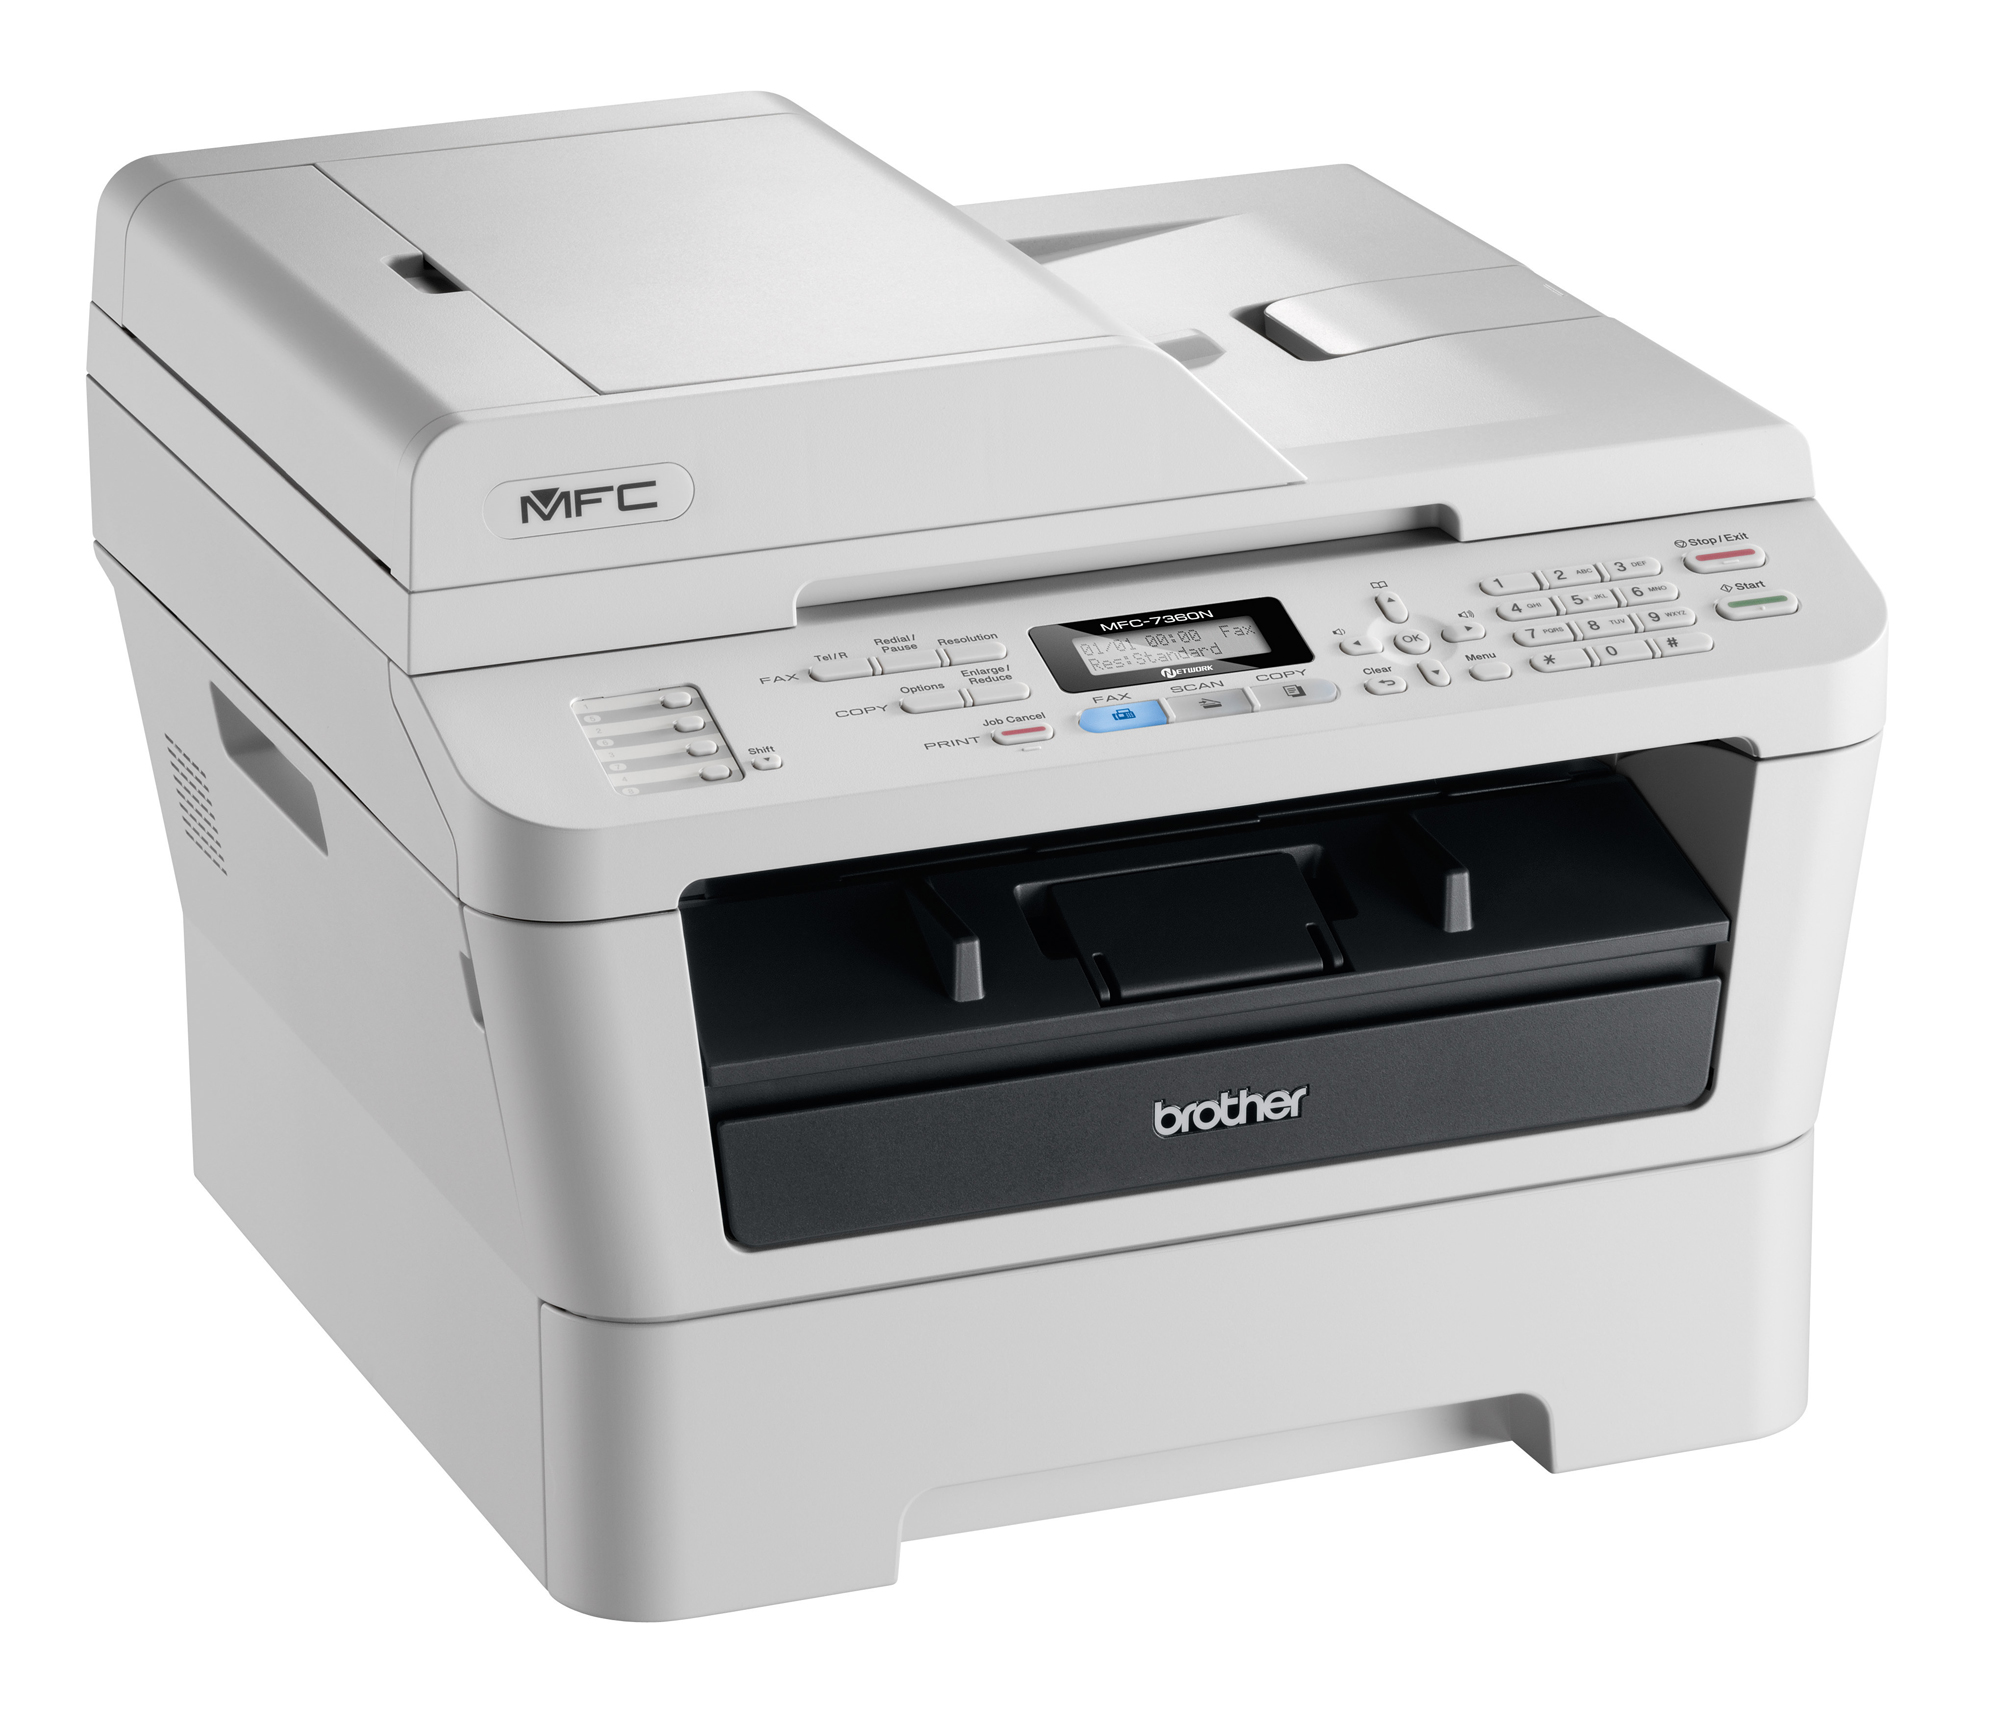 Brother MFC-7360 (MFC-serie)